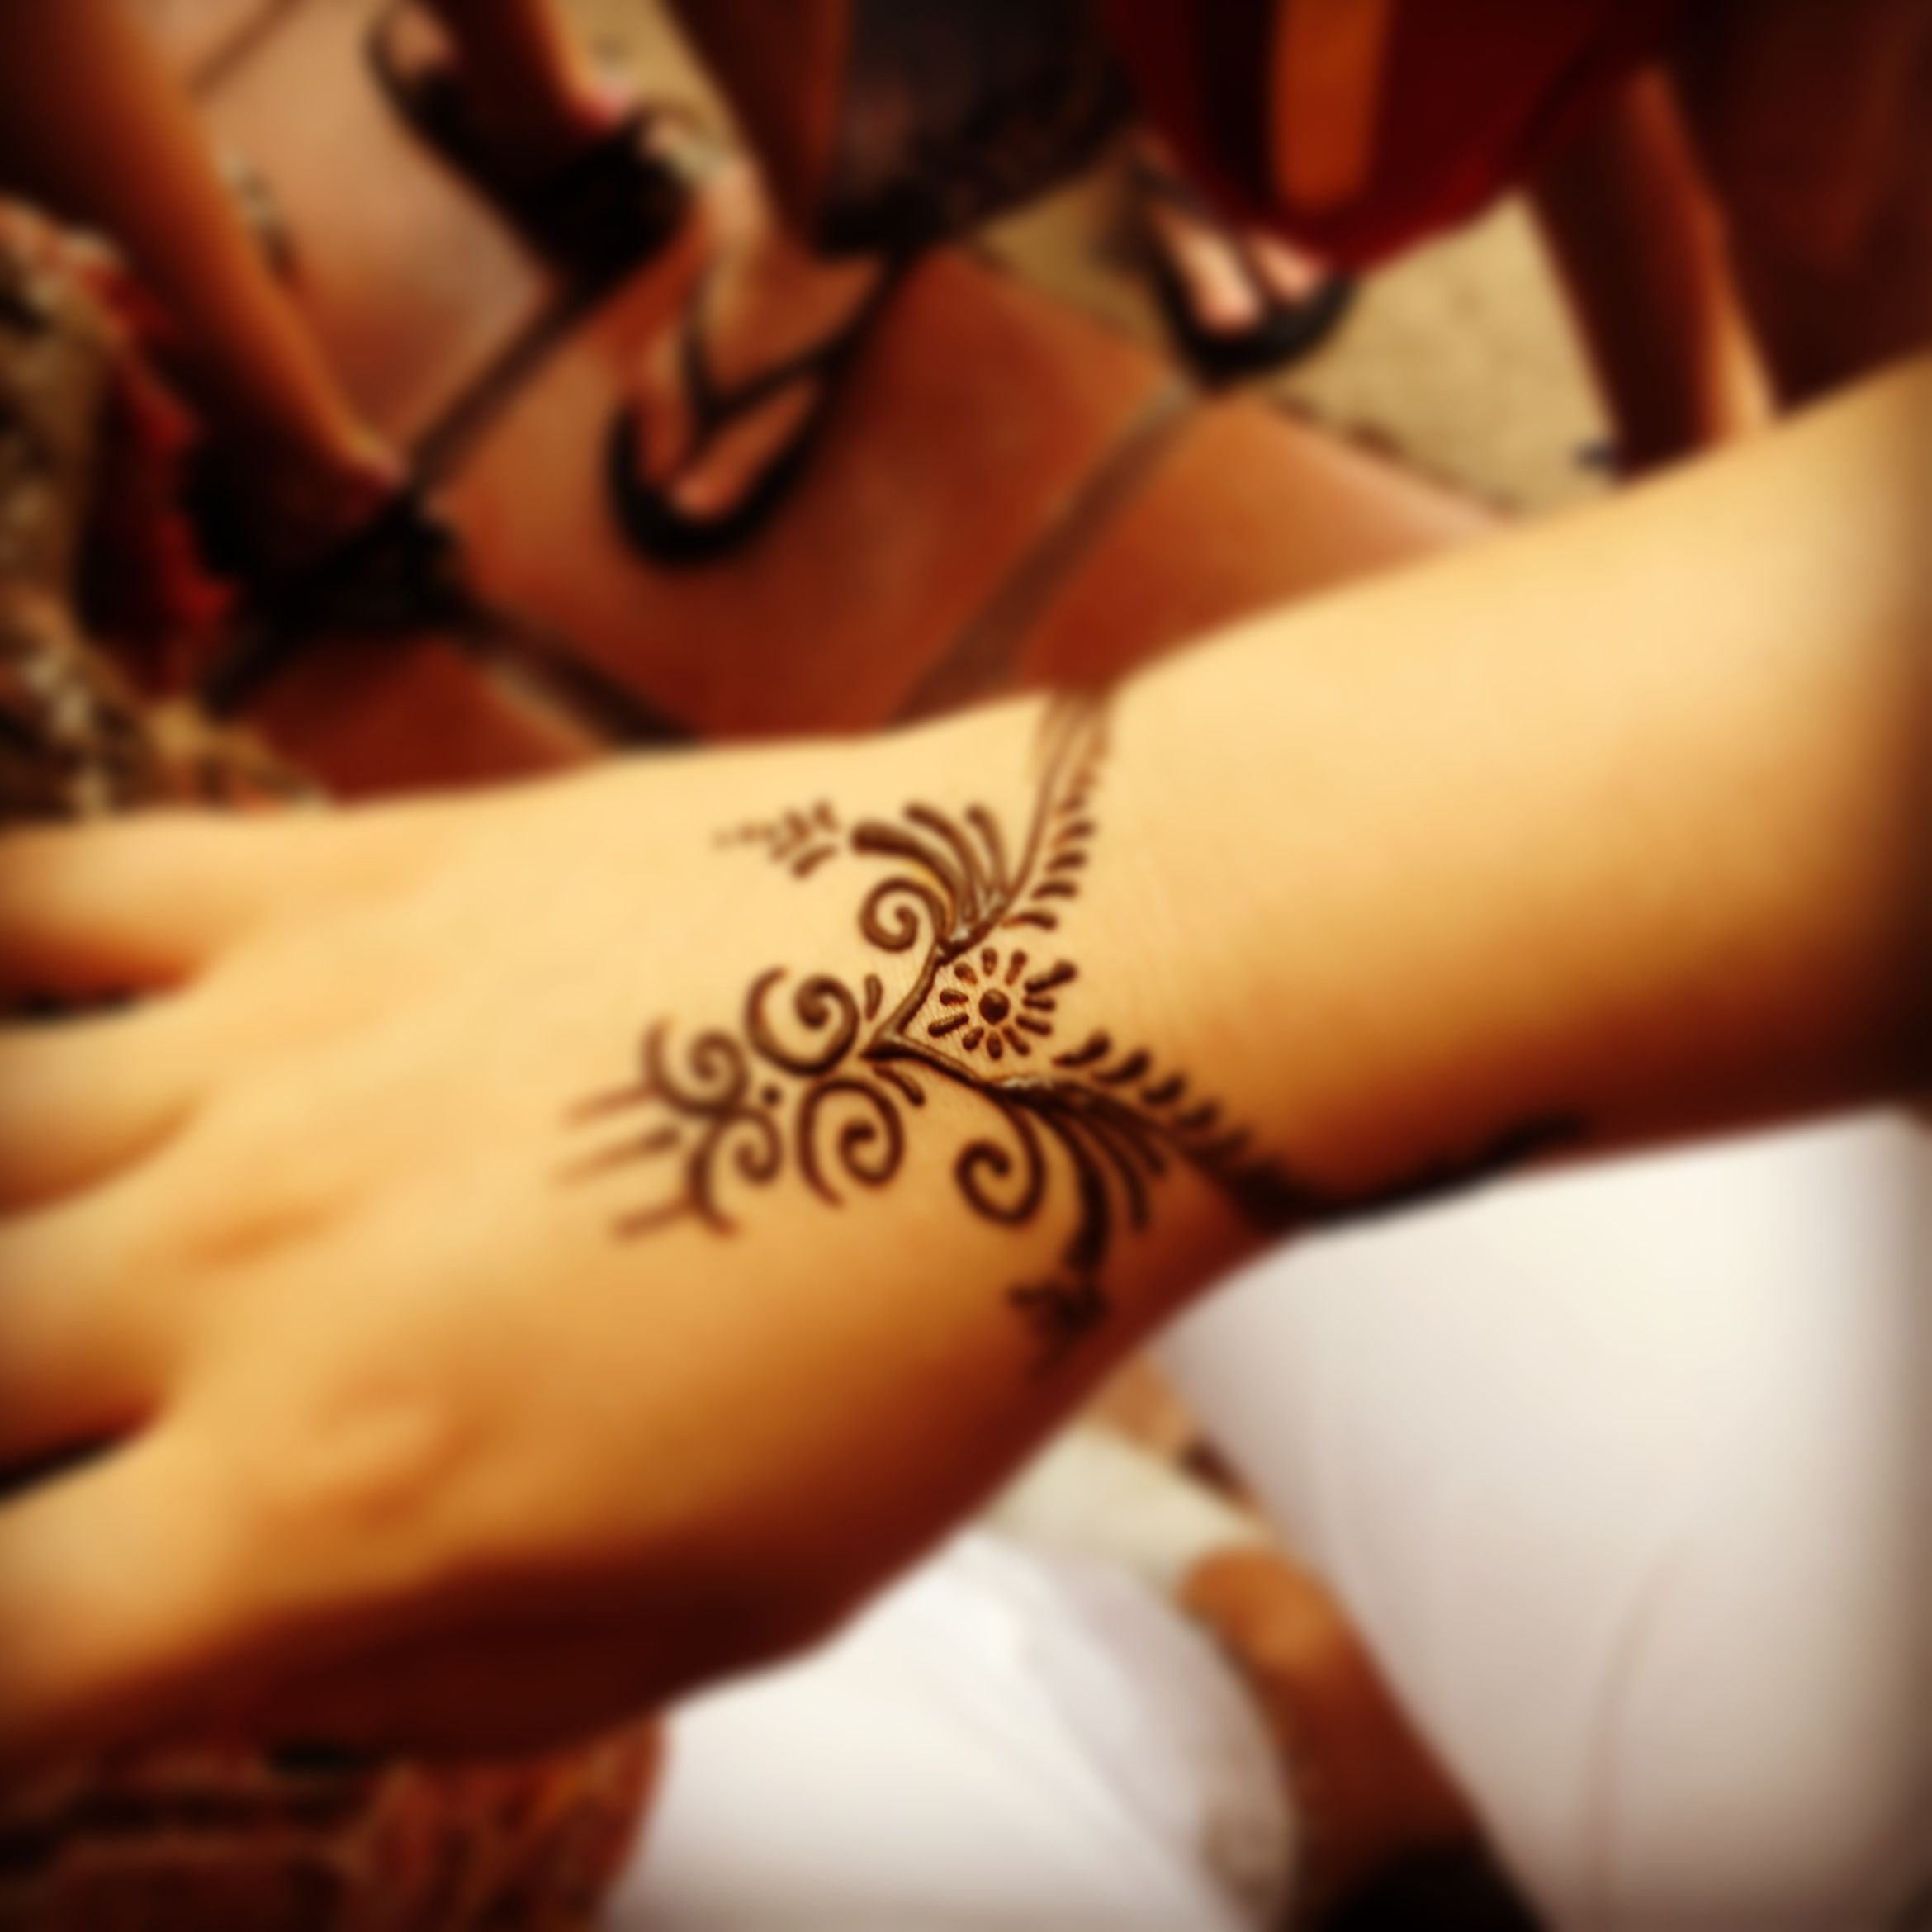 Annoyingly out of focus but nice simple design henna designs